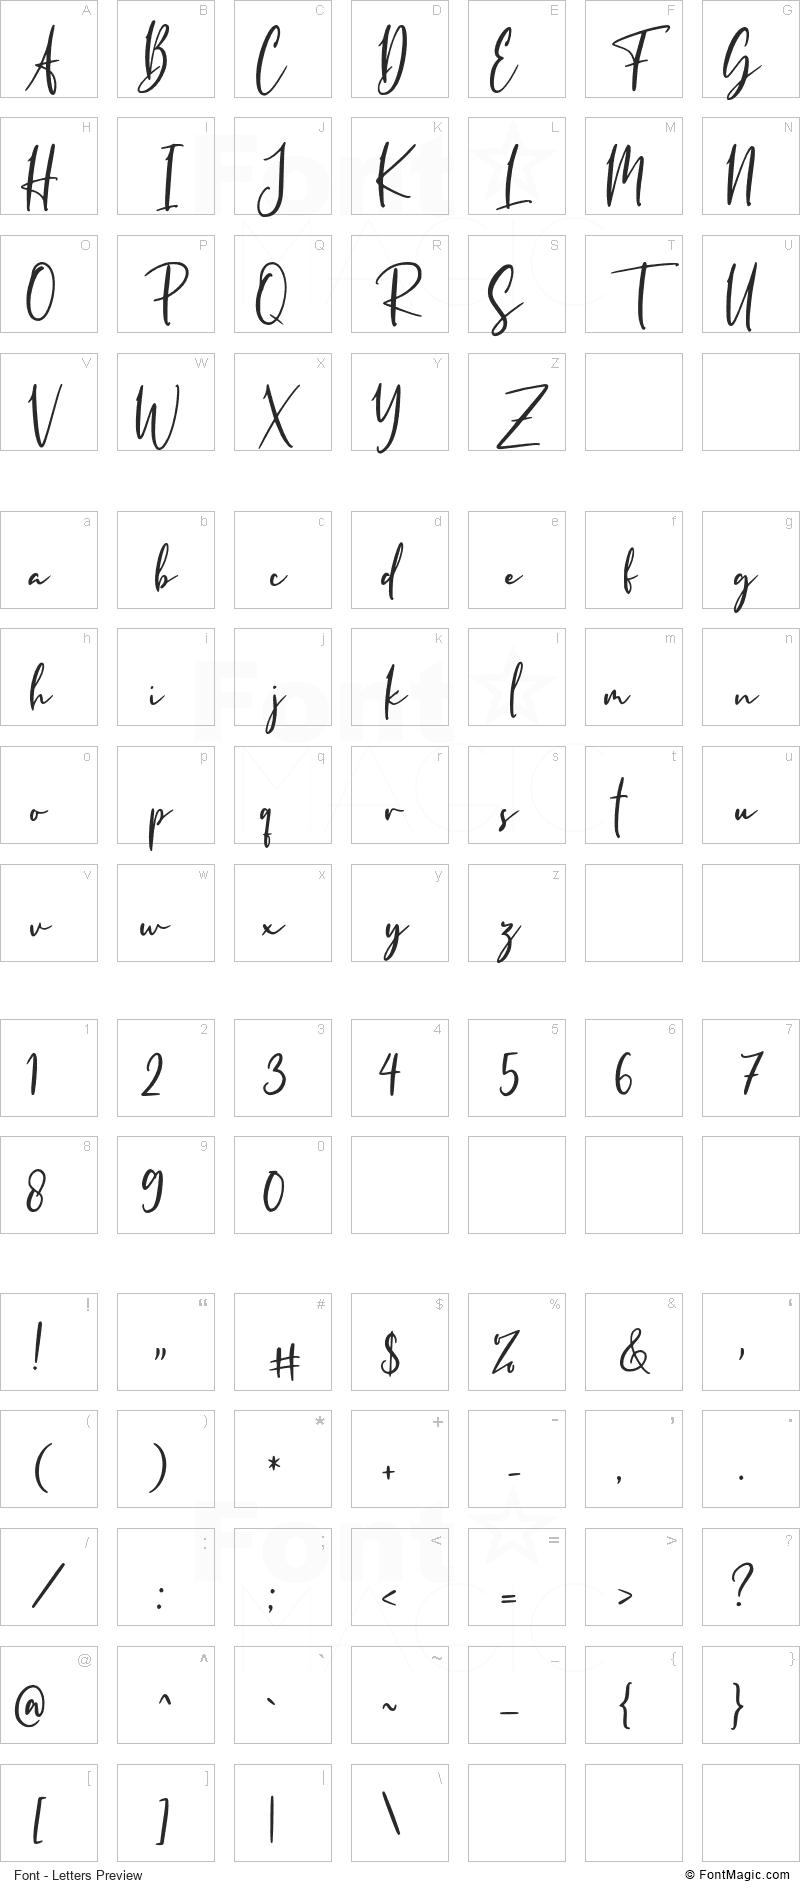 Harstmount Font - All Latters Preview Chart